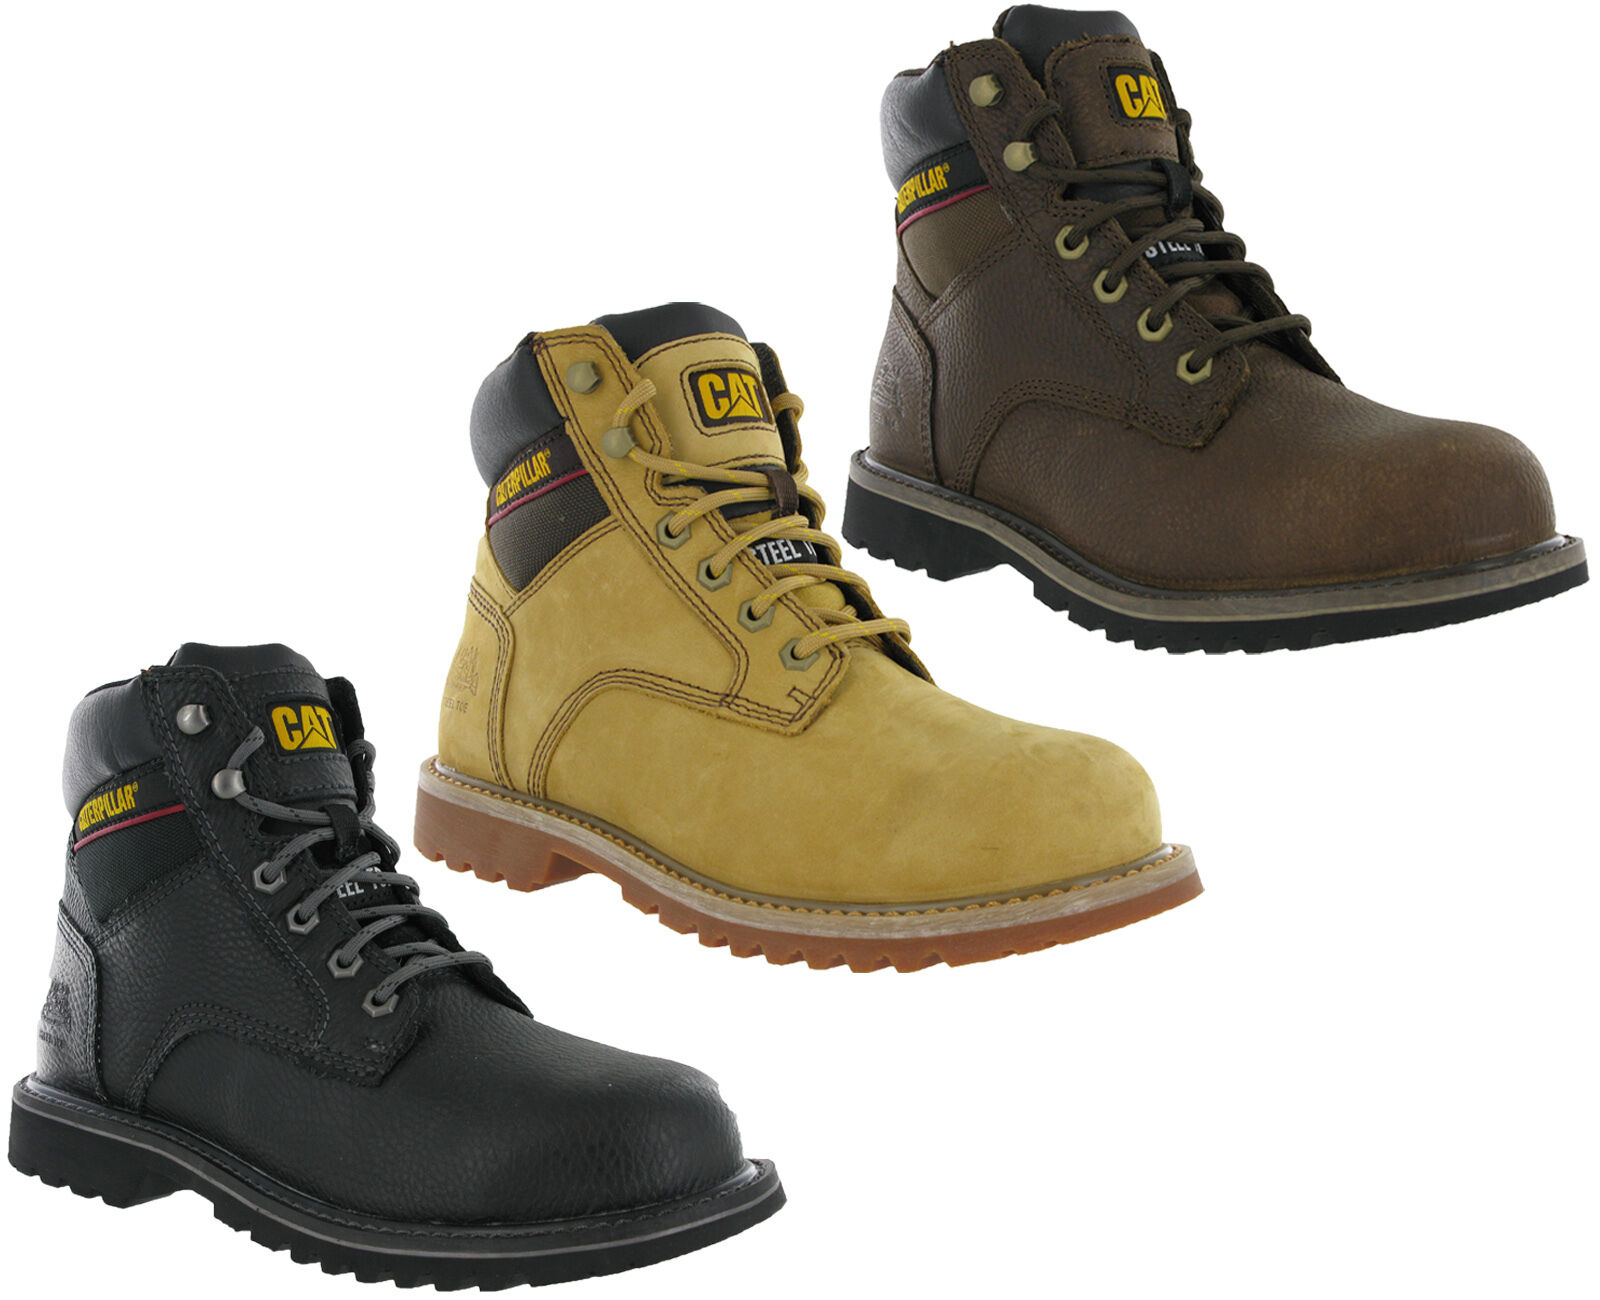 CAT Safety Caterpillar Electric Safety CAT Steel Toe Leather Suede Mens Work Boots UK6-12 454b30